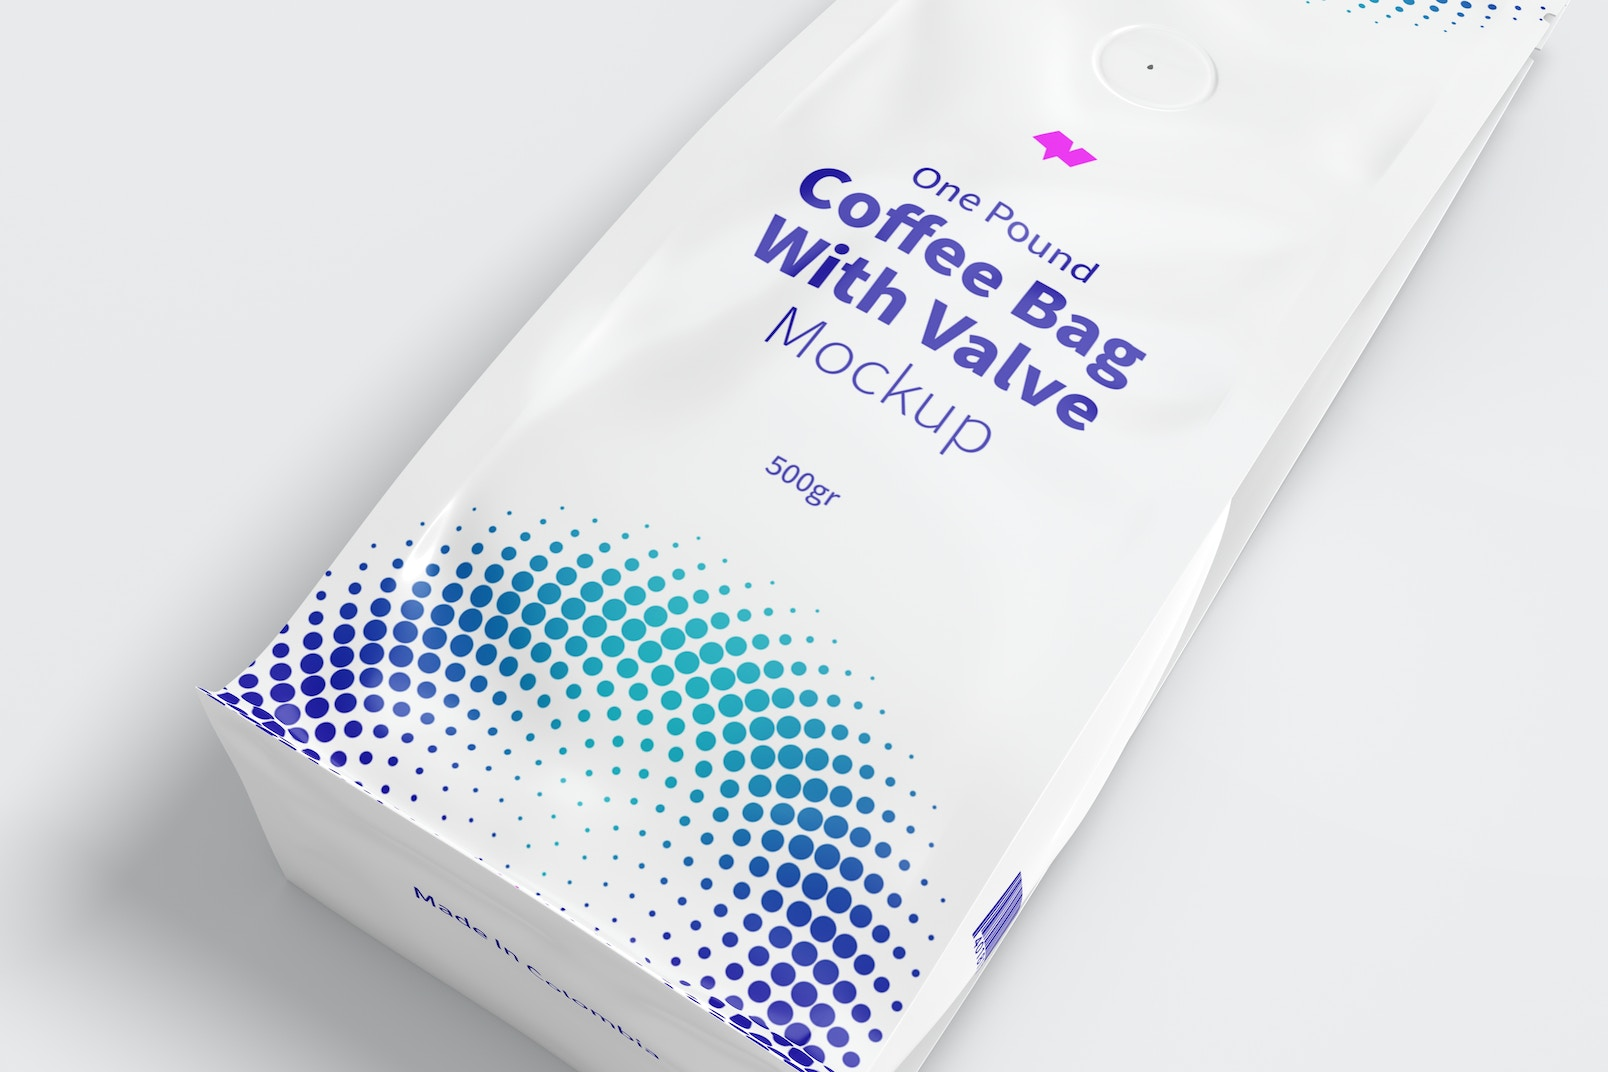 One Pound Coffee Bag with Valve Mockup, Close Up